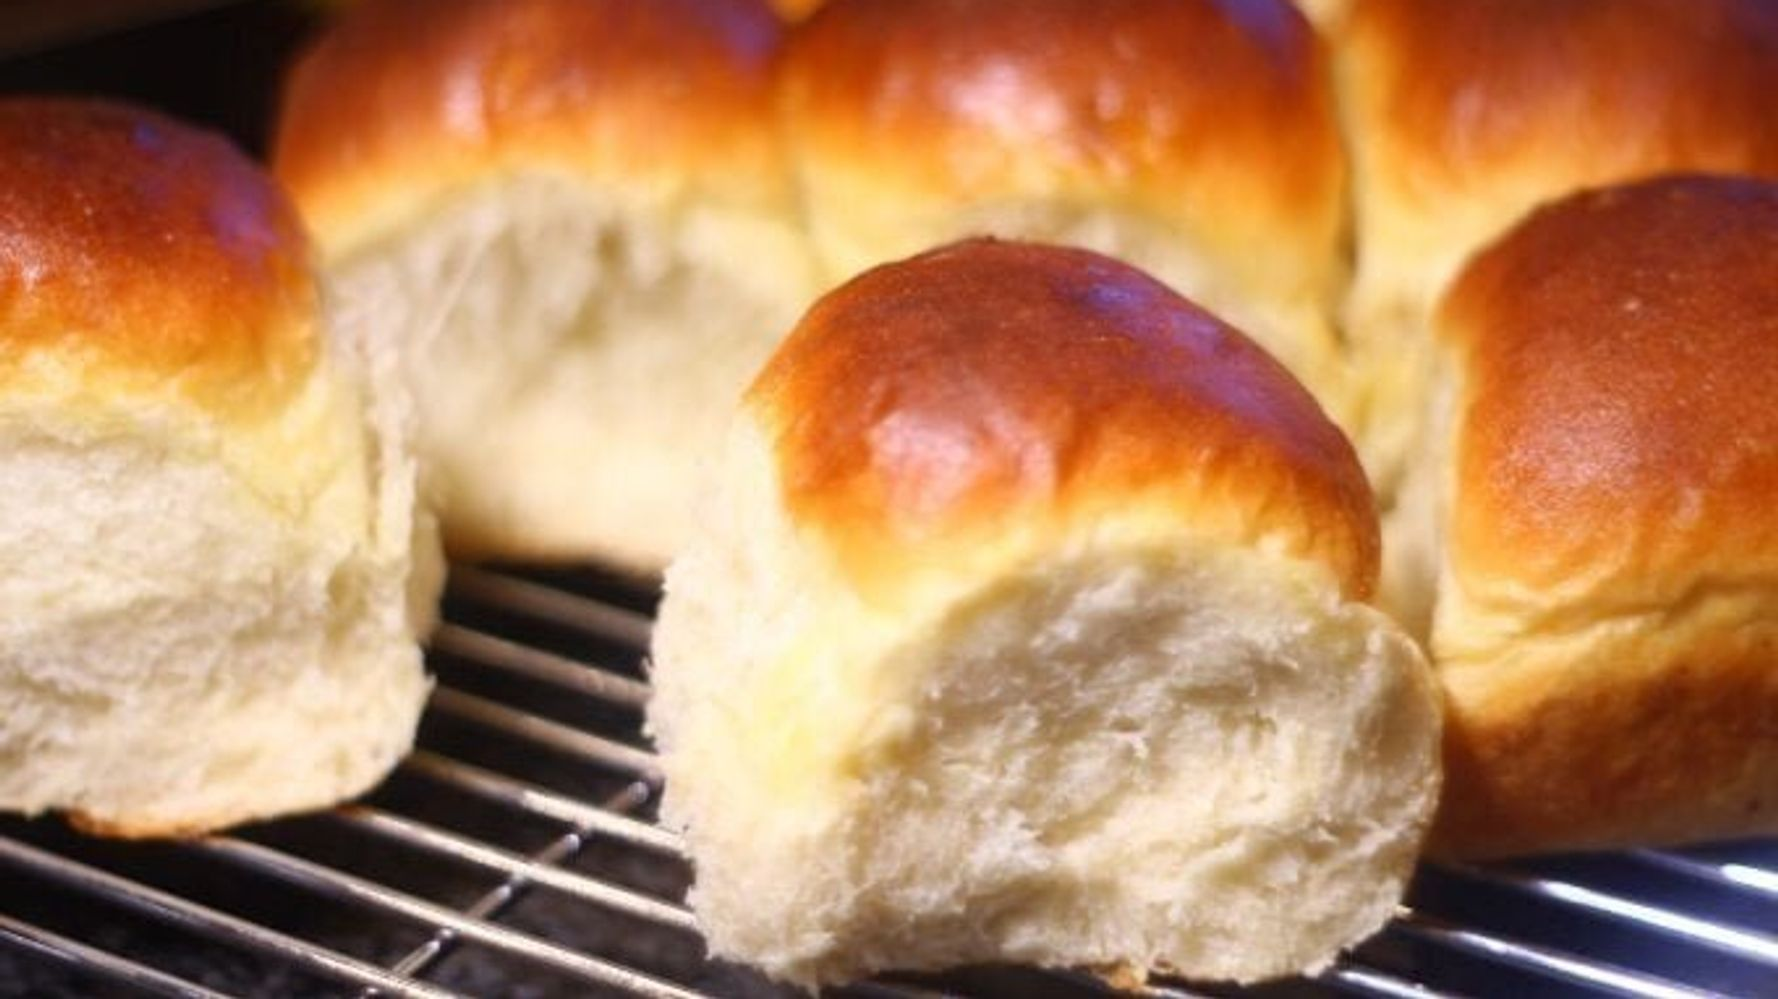 A White Burger Bap Recipe, Inspired By Bake Off's Technical Challenge